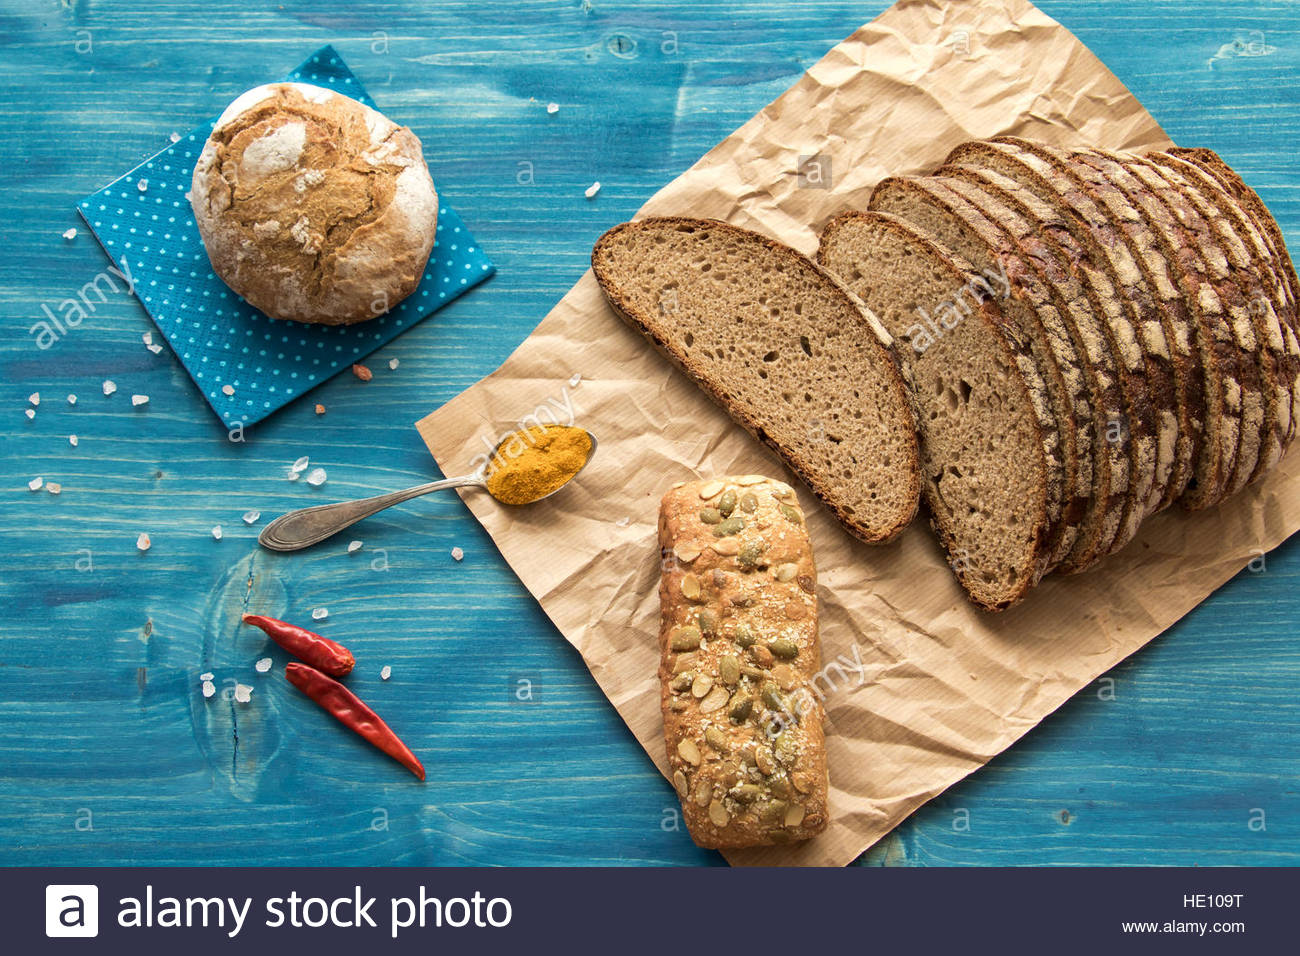 Bread sliced cut bread bread loaf bread backgound rustic bread bread overhead detail bread close up brown bread Stock Photo